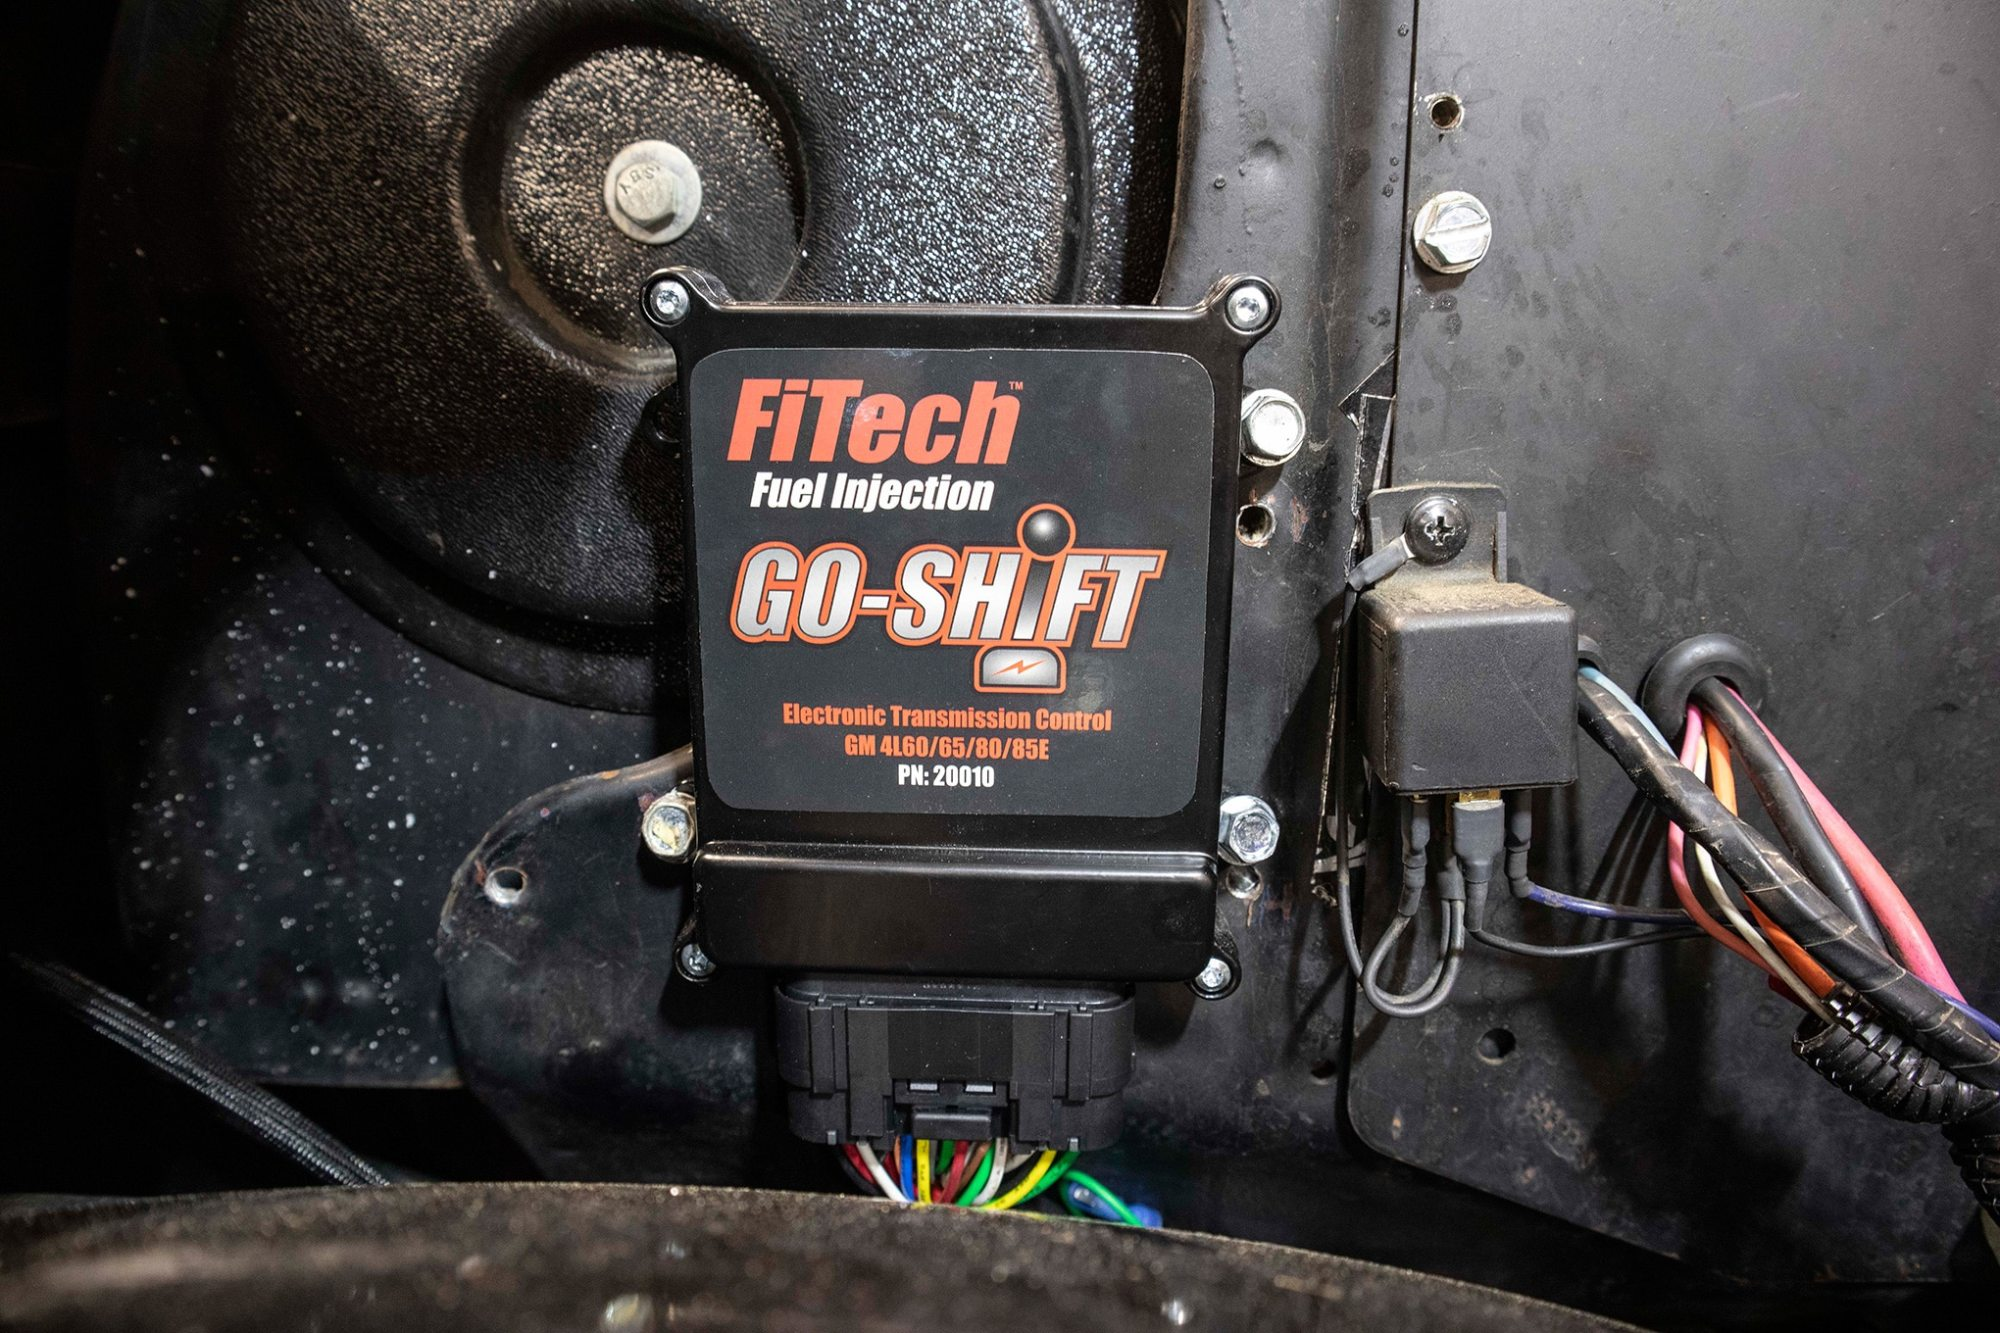 hight resolution of installing the go shift transmission controller from fitech for gm 4l60e 4l65e 4l80e and 4l85e